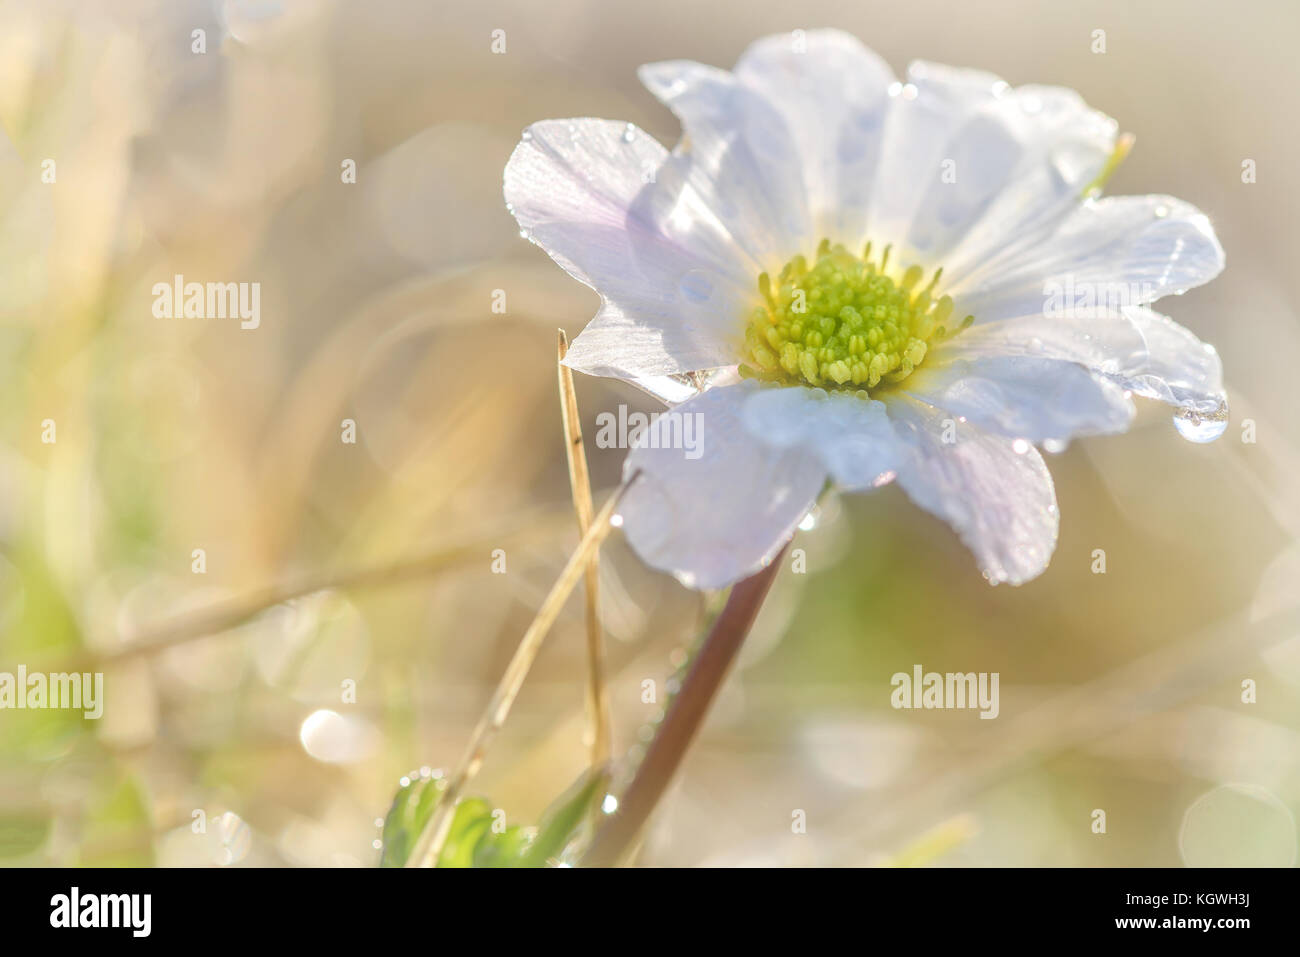 Floral natural background with beautiful wild flower with white floral natural background with beautiful wild flower with white petals and yellow middle with dew drops close up on blurred background mightylinksfo